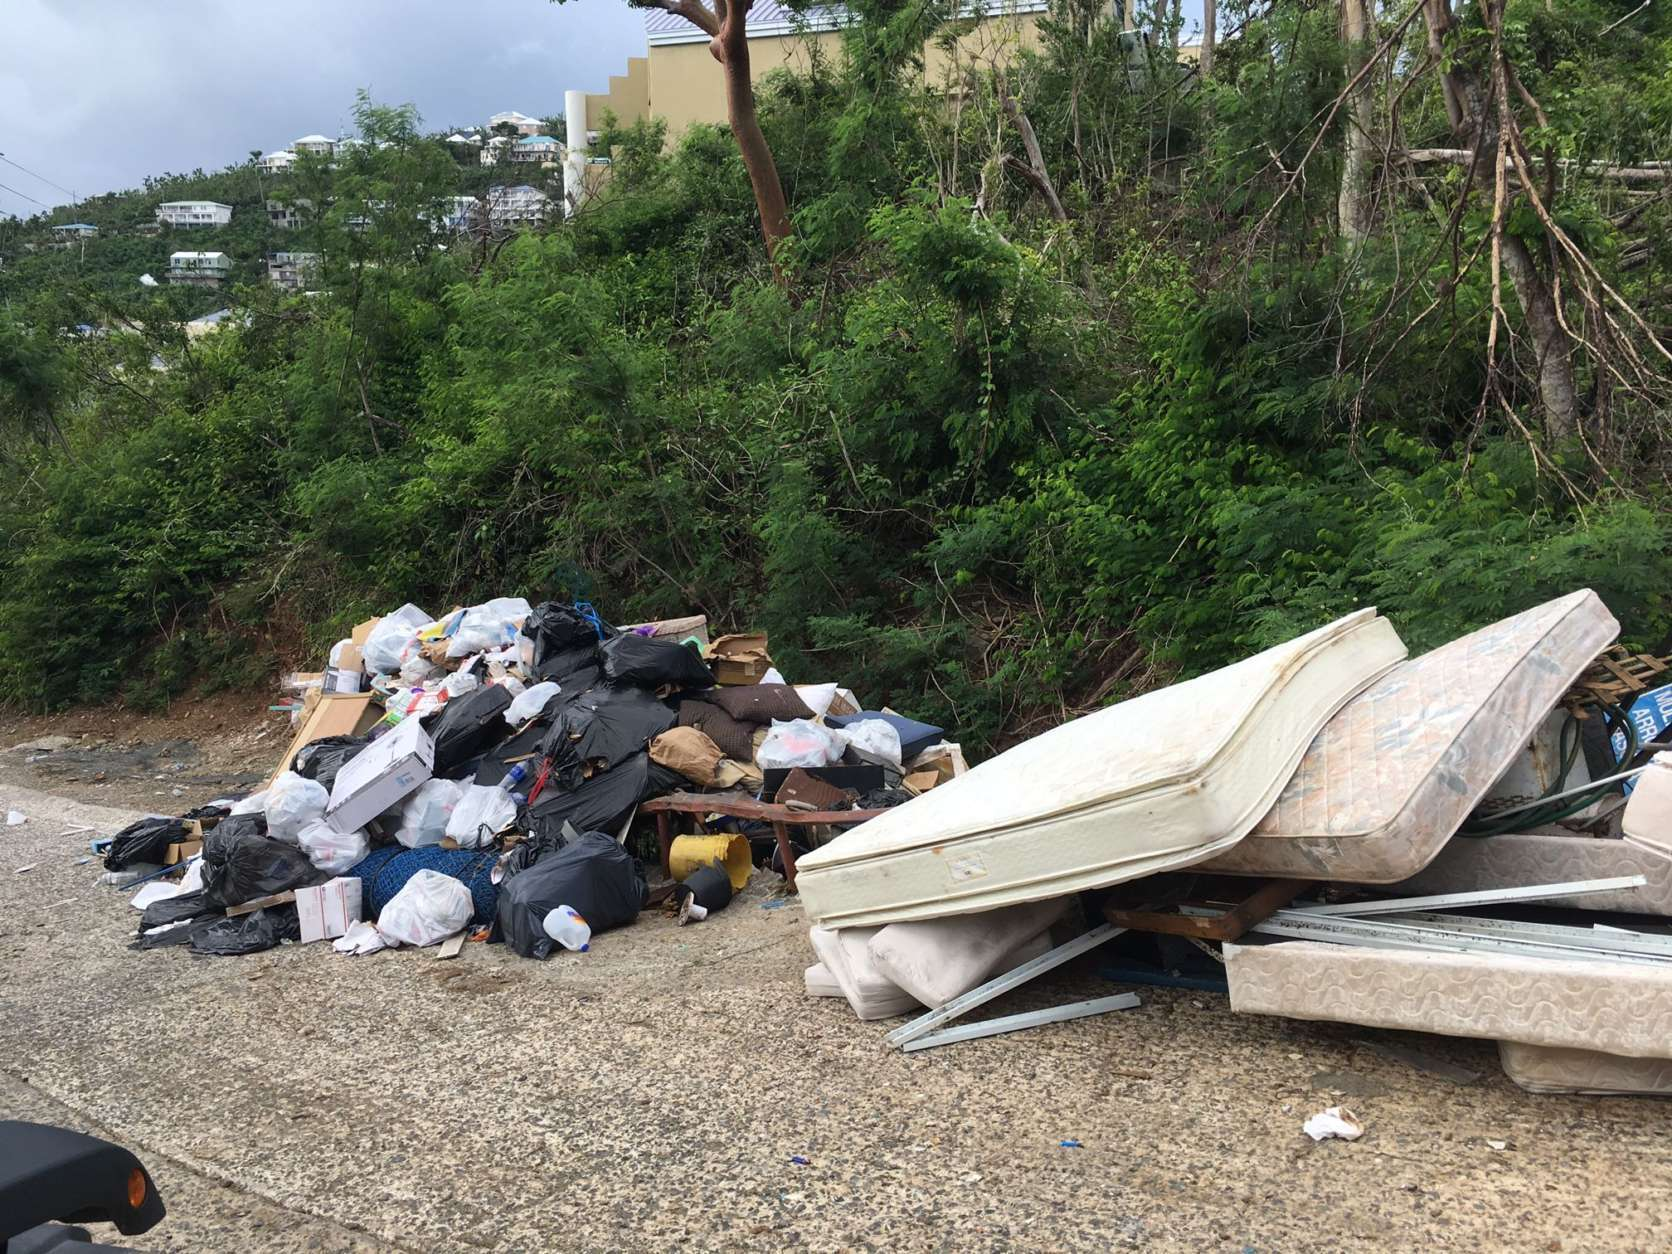 Debris management remains a struggle with public dumpsters overflowing. (WTOP/Jeff Clabaugh)